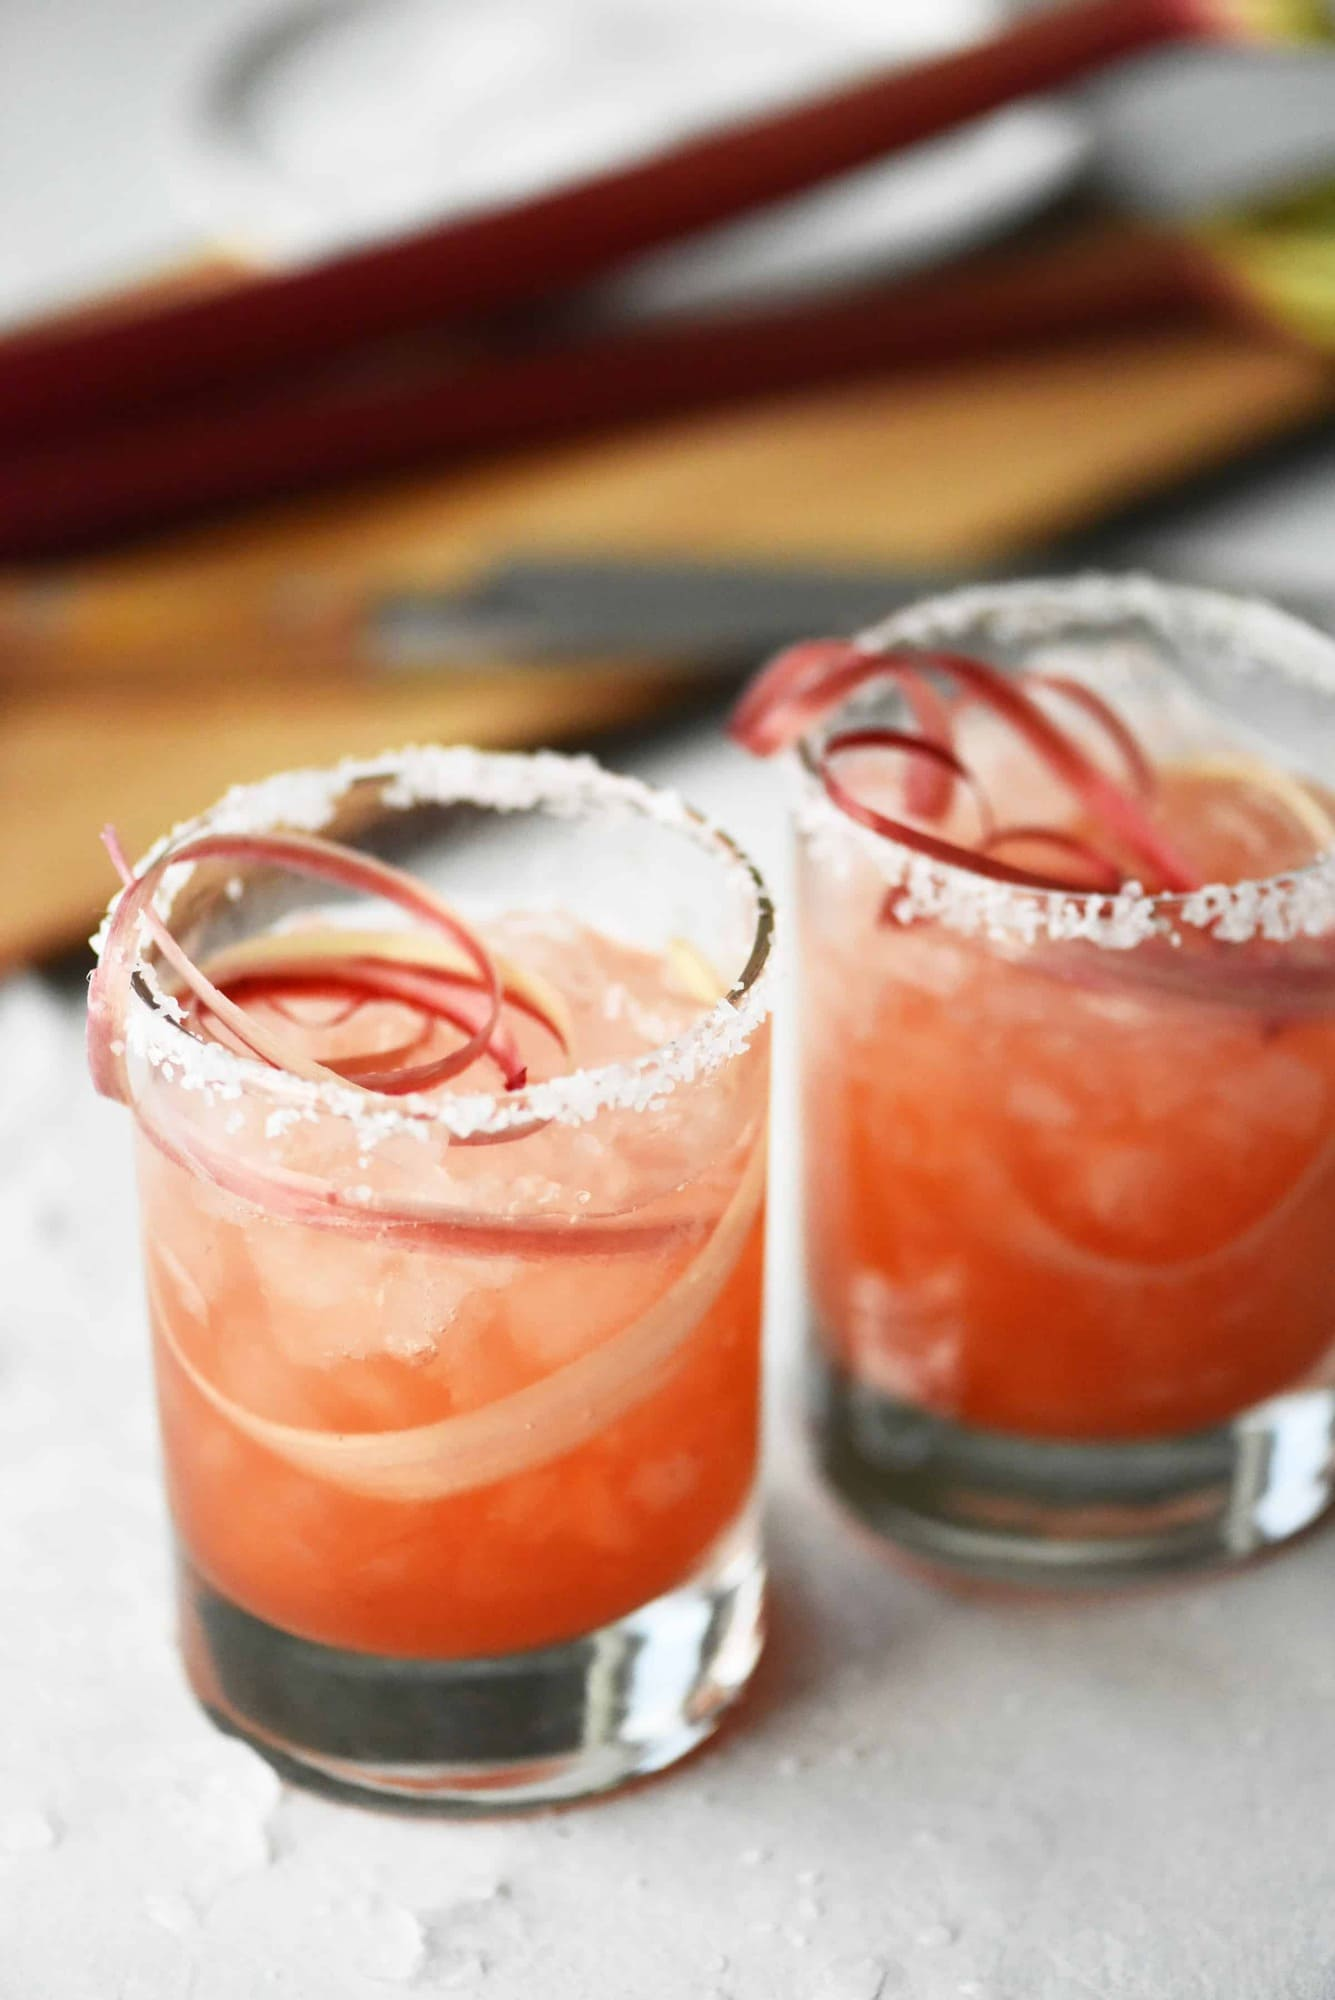 Pouring raspberry rhubarb margarita into glass with rhubarb ribbons